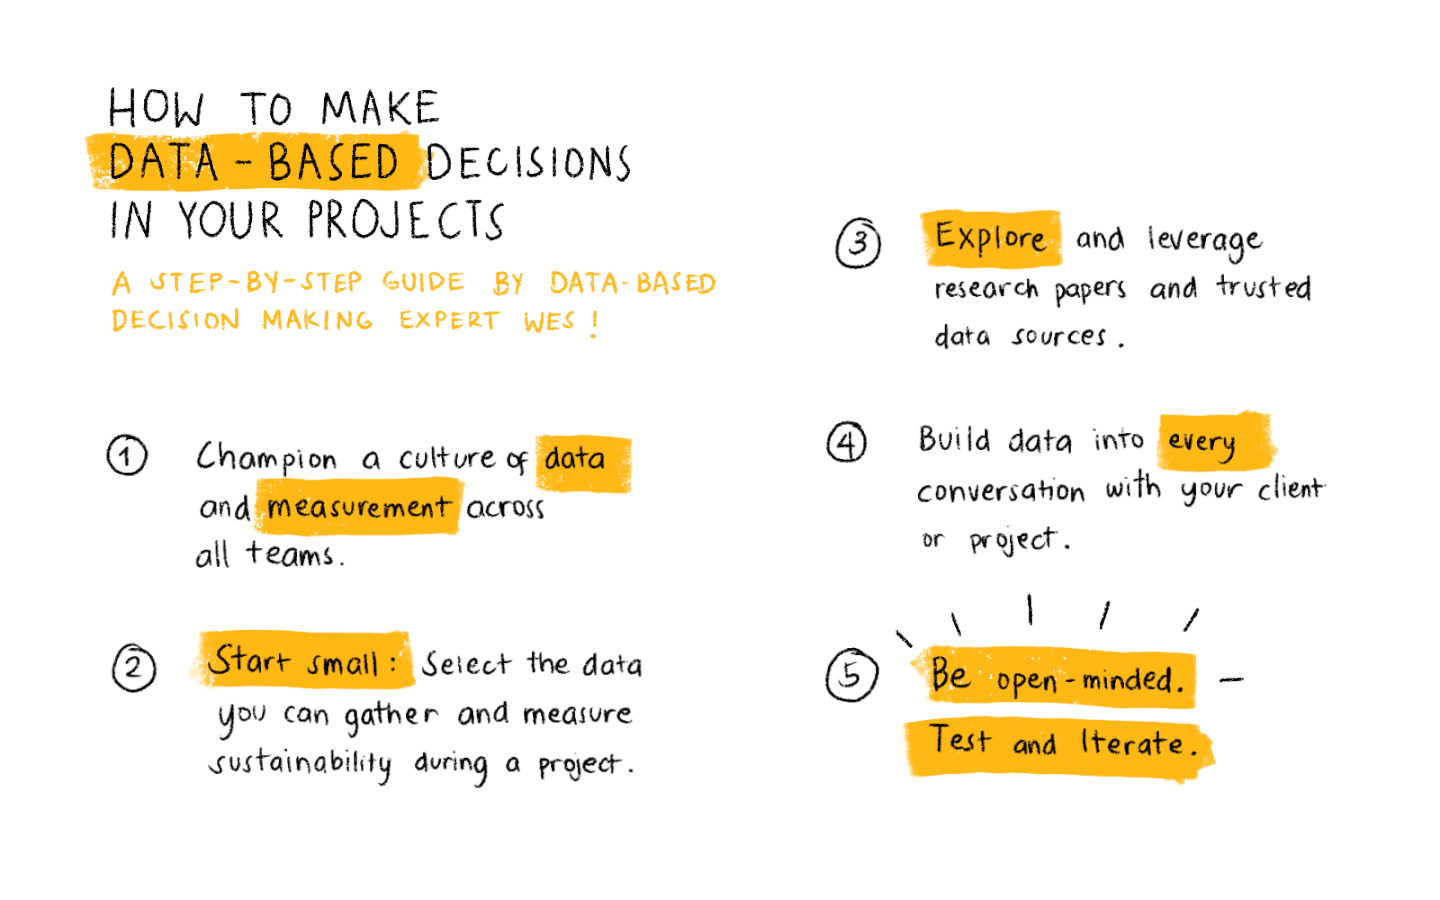 illustration of the 5 steps to making data-based decisions